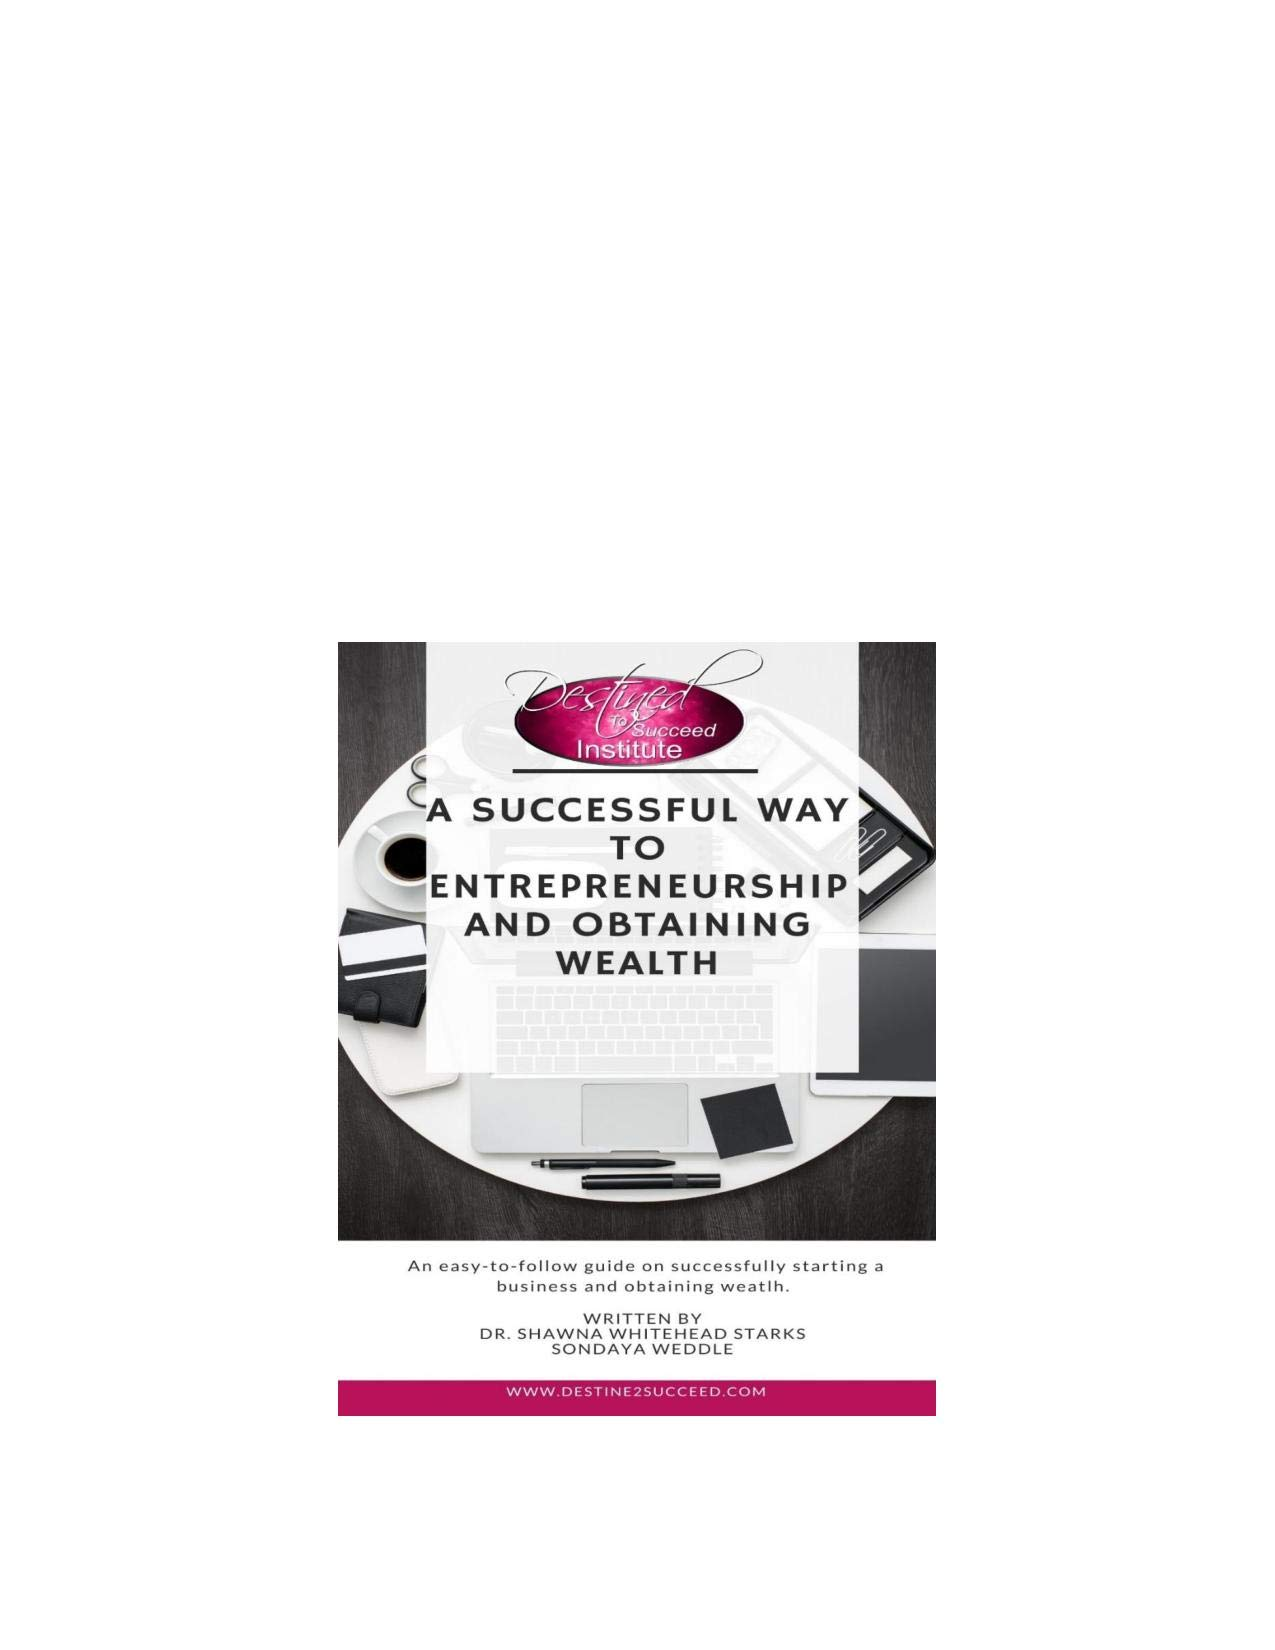 Destined to Succeed Institute: A Successful Way To Entrepreneurship and Obtaining Wealth